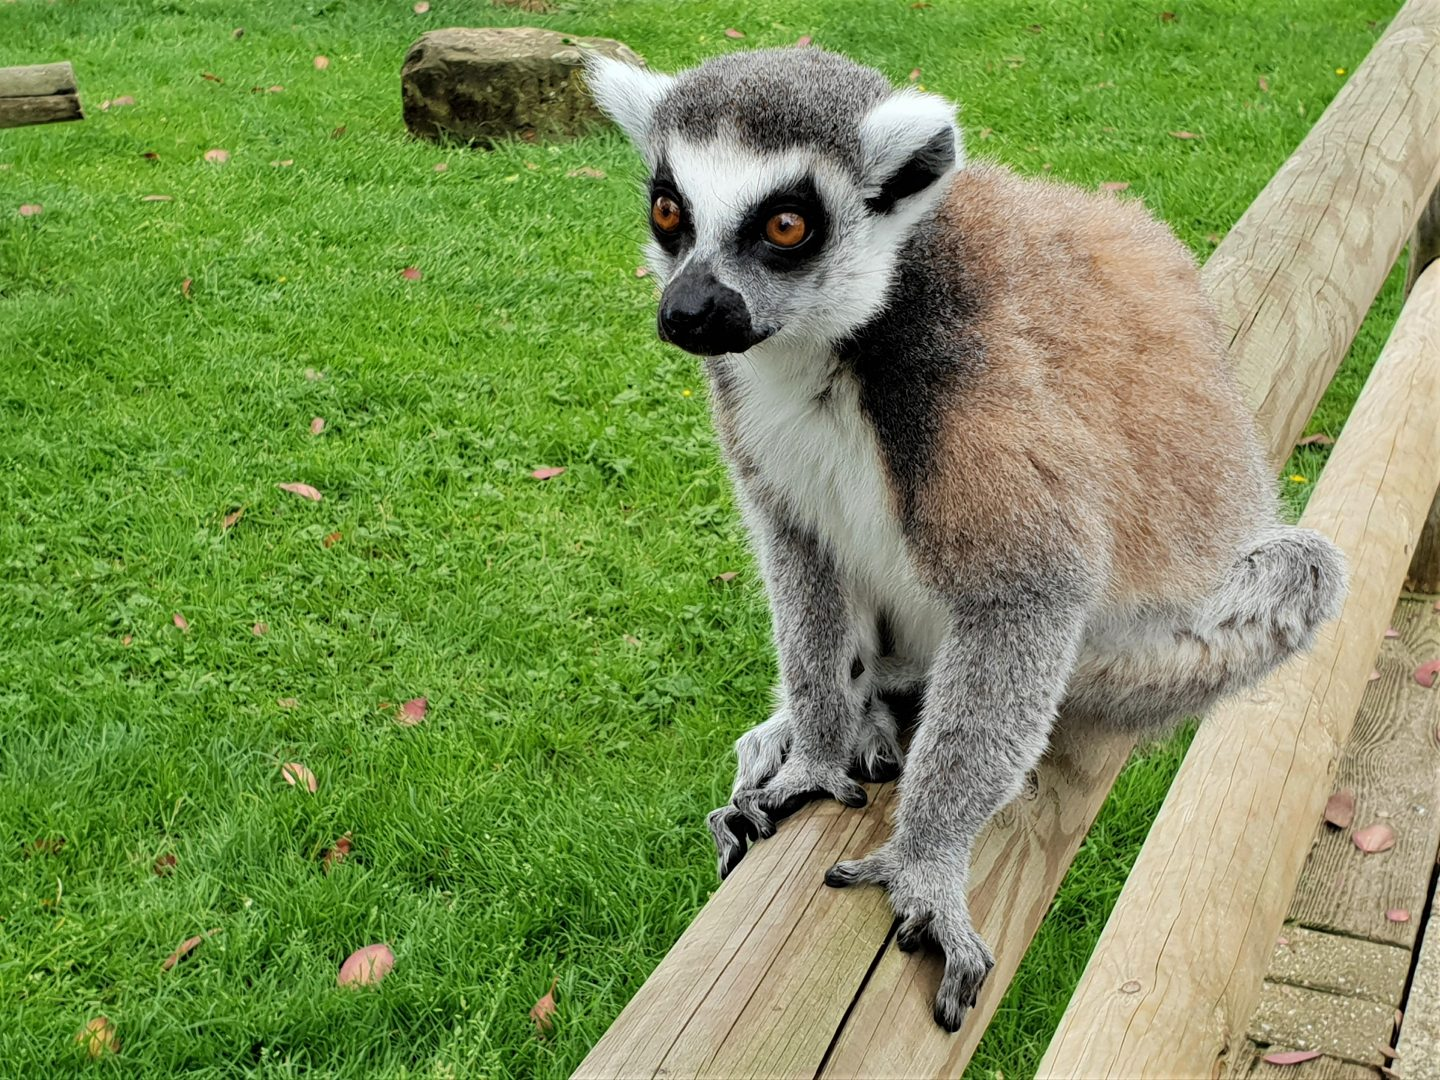 Lemur in Lemurland at Drusillas Park, East Sussex